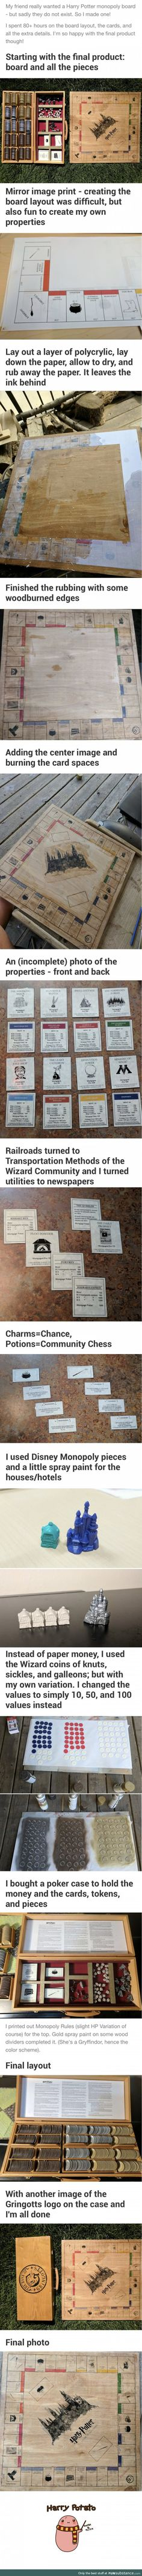 Monopoly Harry Potter board. The fact someone made this for a friend is awesome! There should be a Harry Potter monopoly board, I wonder why there isn't one?